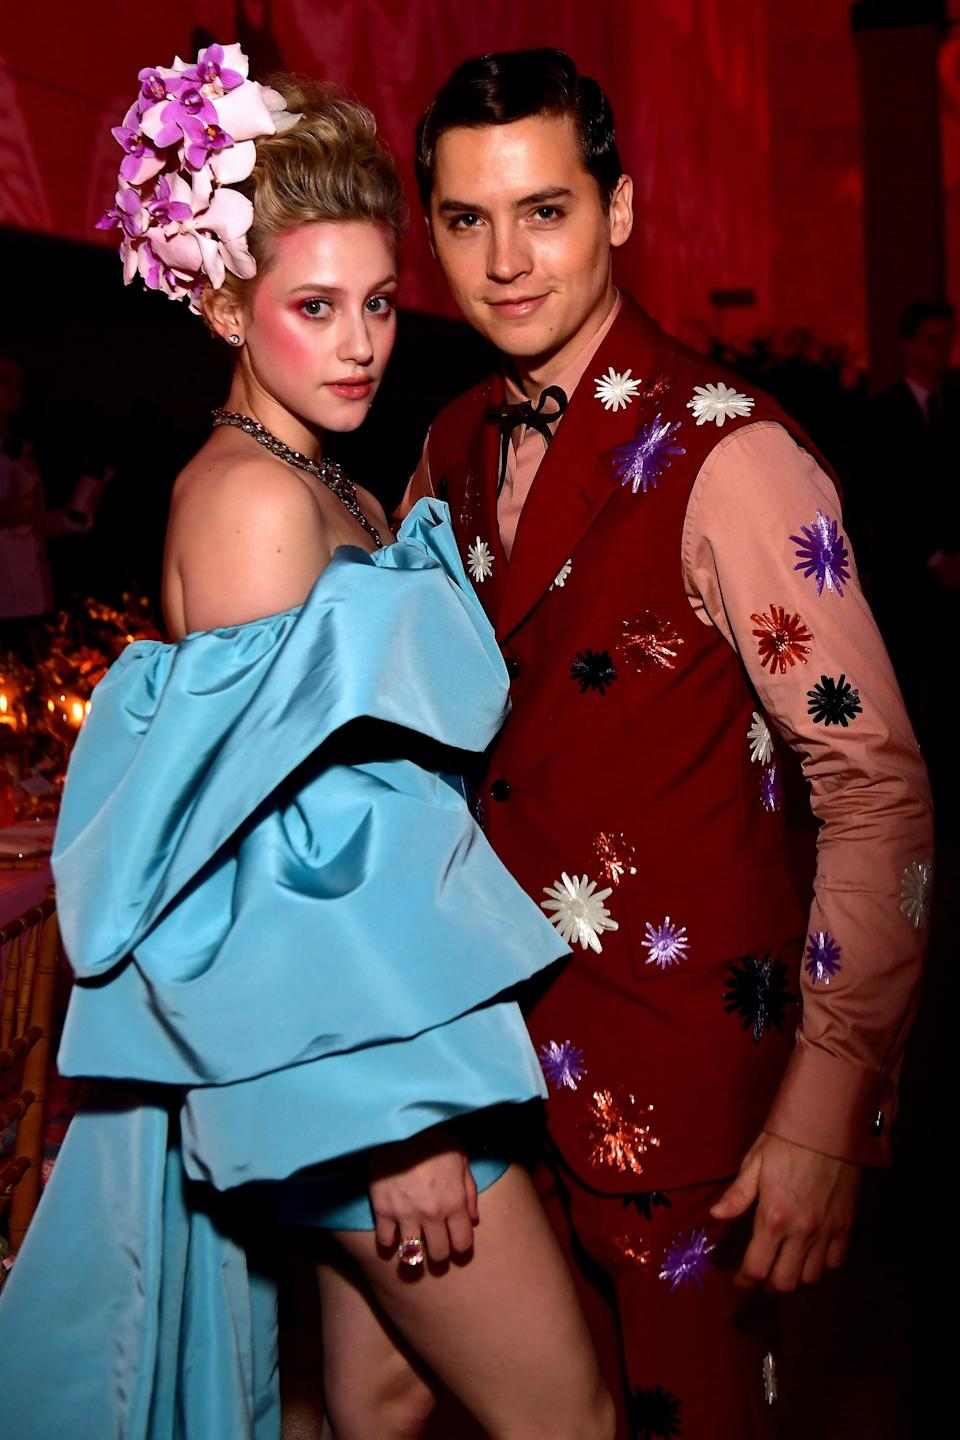 """<p>Though Lili and Cole first met in 2016 while playing occasional lovers Betty and Jughead on <strong><a class=""""link rapid-noclick-resp"""" href=""""https://www.popsugar.co.uk/Riverdale"""" rel=""""nofollow noopener"""" target=""""_blank"""" data-ylk=""""slk:Riverdale"""">Riverdale</a></strong>, they didn't go public with their own romance until 2018. The two dated on and off for two years before finally splitting for good in 2020. Not long after their second and (maybe) final breakup, the former couple began filming season five of their CW series.</p> <p>Back in July 2019 during an interview with <strong>W</strong>, Lili spoke about the grueling hours spent filming and said <a href=""""http://www.wmagazine.com/story/cole-sprouse-lili-reinhart-relationships-riverdale-interview/"""" class=""""link rapid-noclick-resp"""" rel=""""nofollow noopener"""" target=""""_blank"""" data-ylk=""""slk:she couldn't imagine how &quot;miserable&quot; she'd be"""">she couldn't imagine how """"miserable"""" she'd be</a> if she """"hated"""" her fellow cast members. Later, after returning to Vancouver to resume <strong><a class=""""link rapid-noclick-resp"""" href=""""https://www.popsugar.co.uk/Riverdale"""" rel=""""nofollow noopener"""" target=""""_blank"""" data-ylk=""""slk:Riverdale"""">Riverdale</a> </strong>filming in September 2020, Lili told <strong>Nylon</strong> <a href=""""http://www.nylon.com/entertainment/lili-reinhart-interview-swimming-lessons-poetry"""" class=""""link rapid-noclick-resp"""" rel=""""nofollow noopener"""" target=""""_blank"""" data-ylk=""""slk:she felt &quot;like a prisoner&quot;"""">she felt """"like a prisoner""""</a> being stuck in Canada, though she didn't explicitly say that feeling had anything to do with her ex. </p> <p>Not long after, <a href=""""http://www.instagram.com/p/CEFPYvKJDGM/"""" class=""""link rapid-noclick-resp"""" rel=""""nofollow noopener"""" target=""""_blank"""" data-ylk=""""slk:Cole posted an Instagram announced their breakup"""">Cole posted an Instagram announced their breakup</a>, saying he wished Lili the """"utmost love and happiness moving forward."""" </p>"""